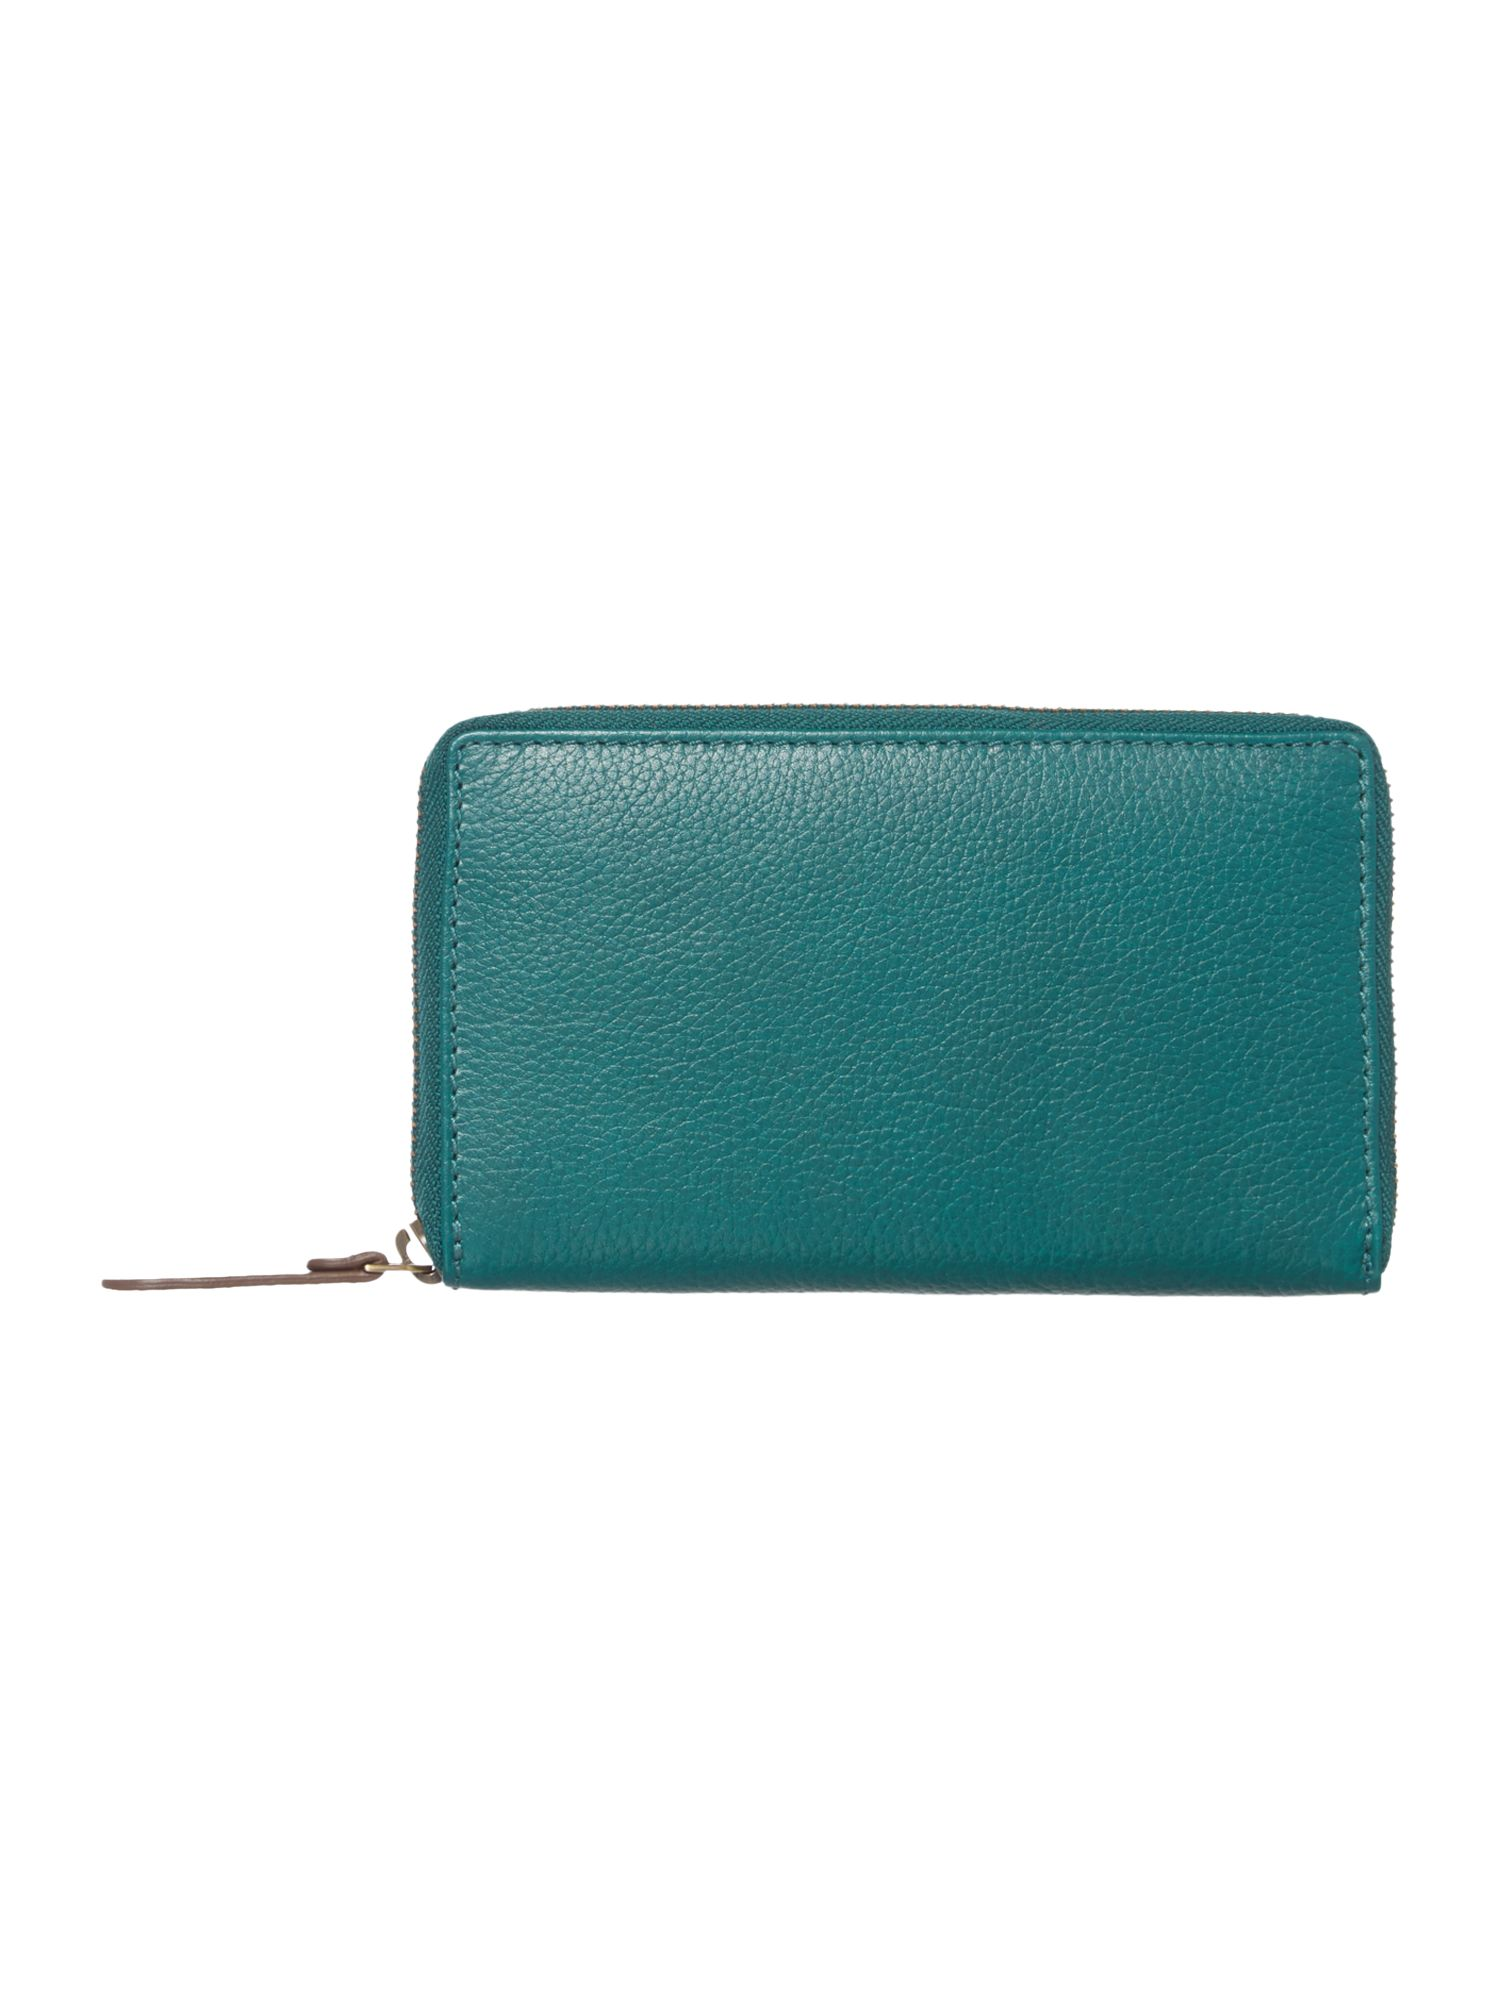 Nikki blue large zip around purse